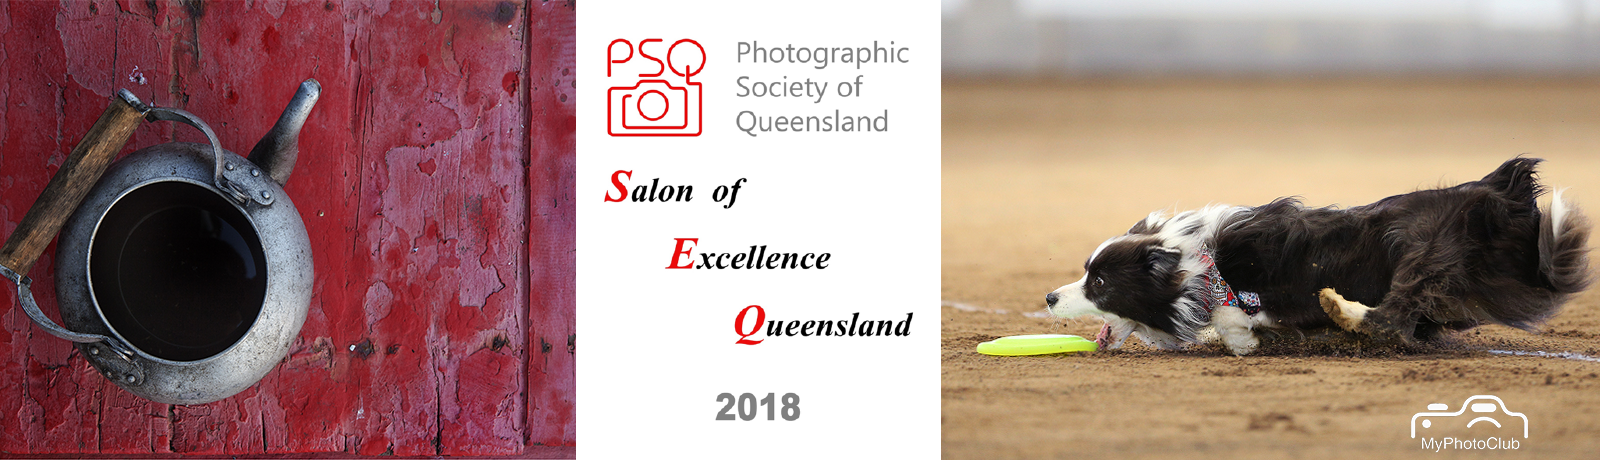 Salon of Excellence Queensland 2018